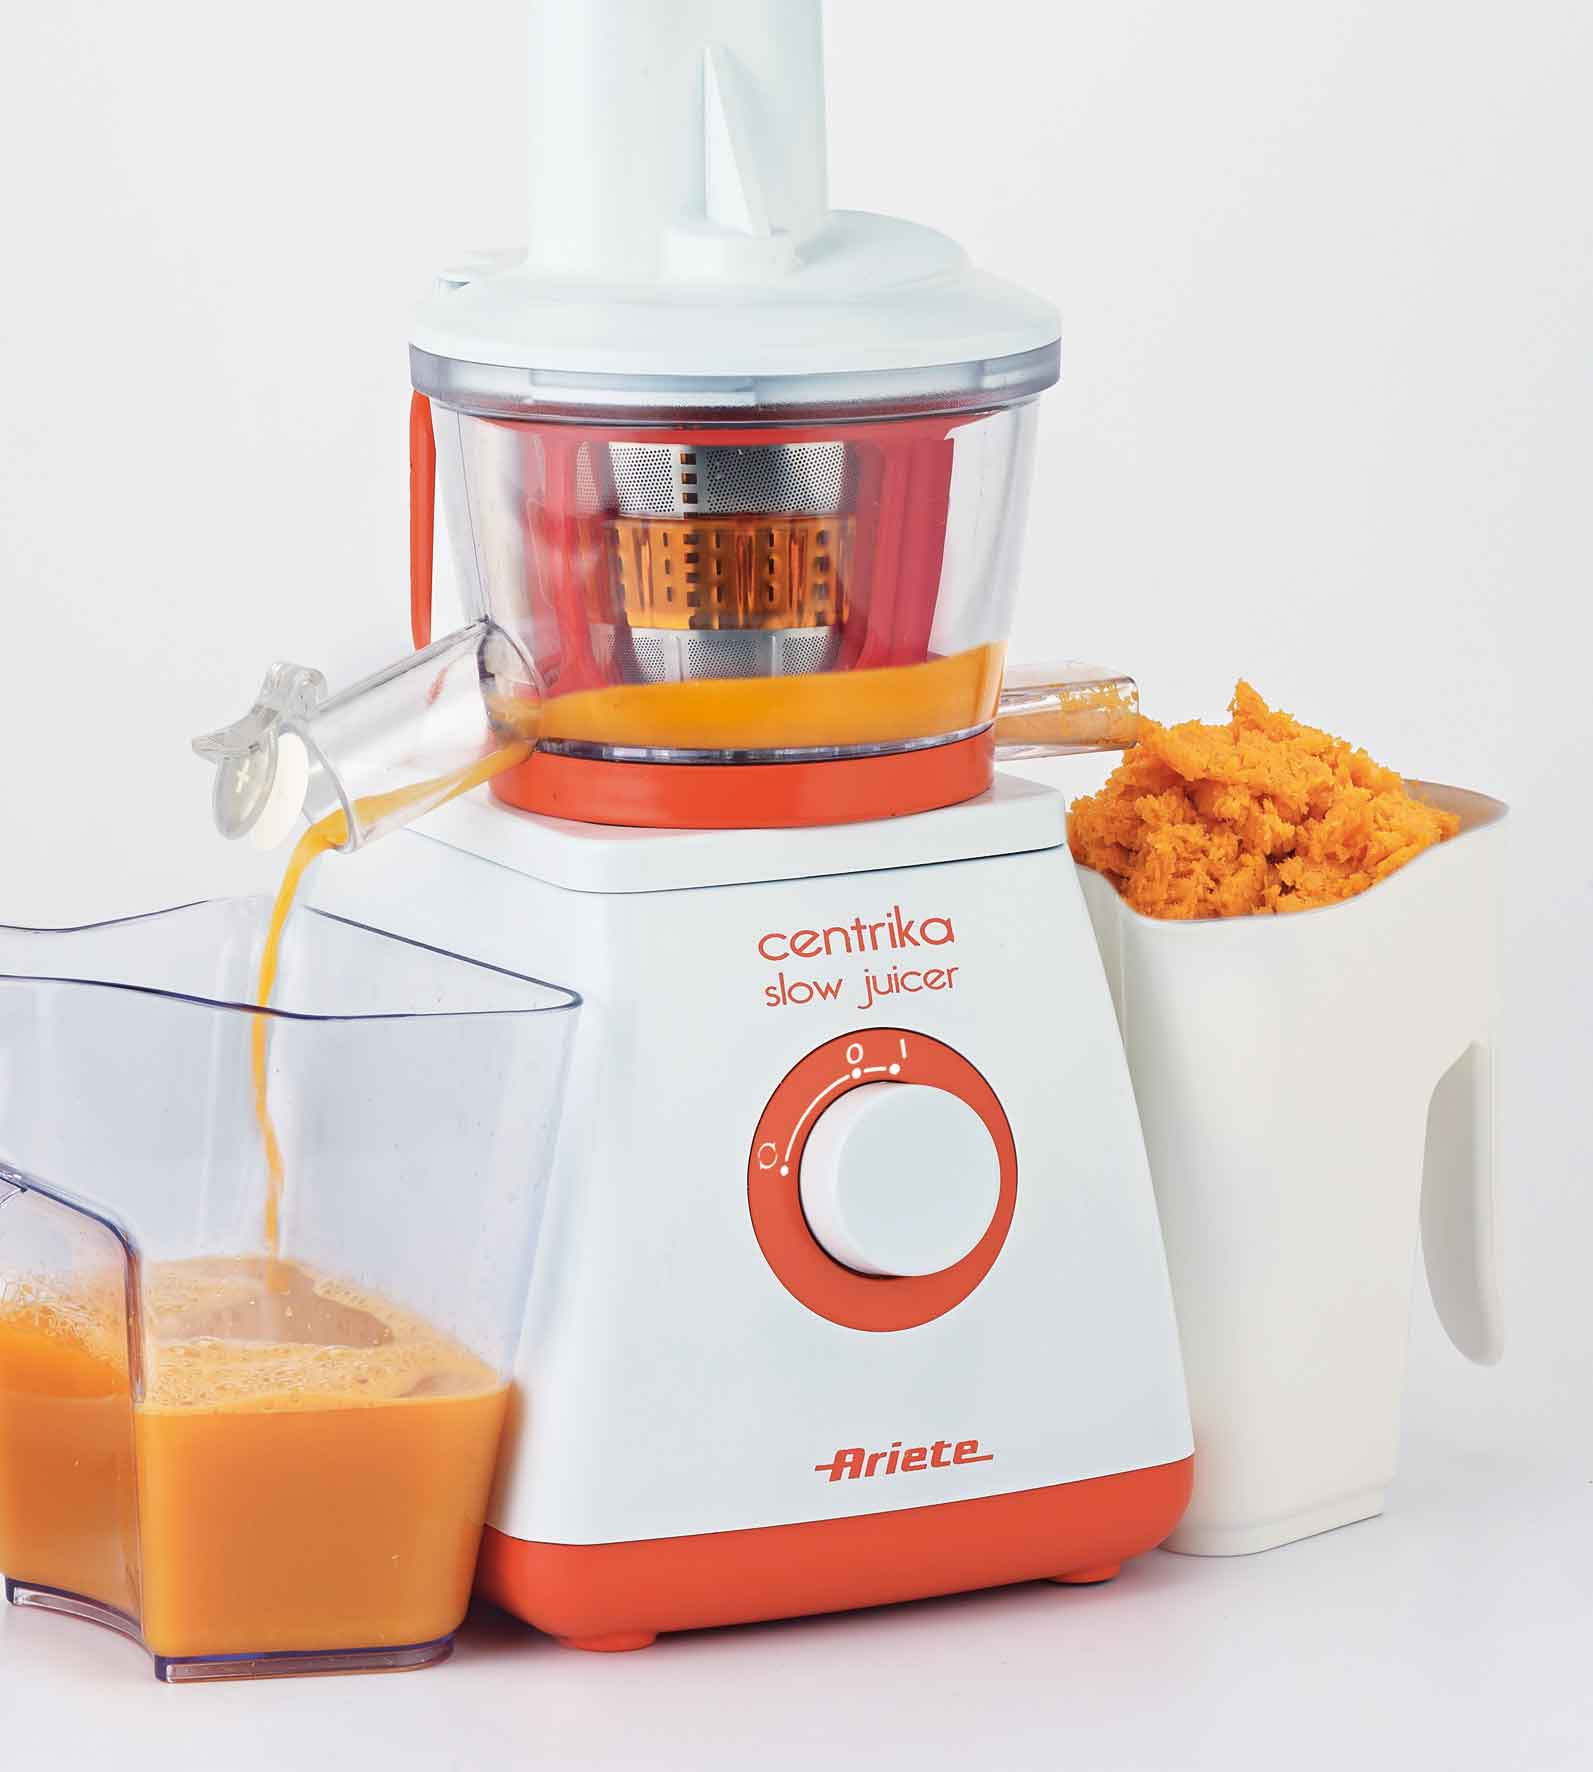 Cucina Red Slow Juicer Reviews : Centrika Slow Juicer - Ariete Piccoli elettrodomestici